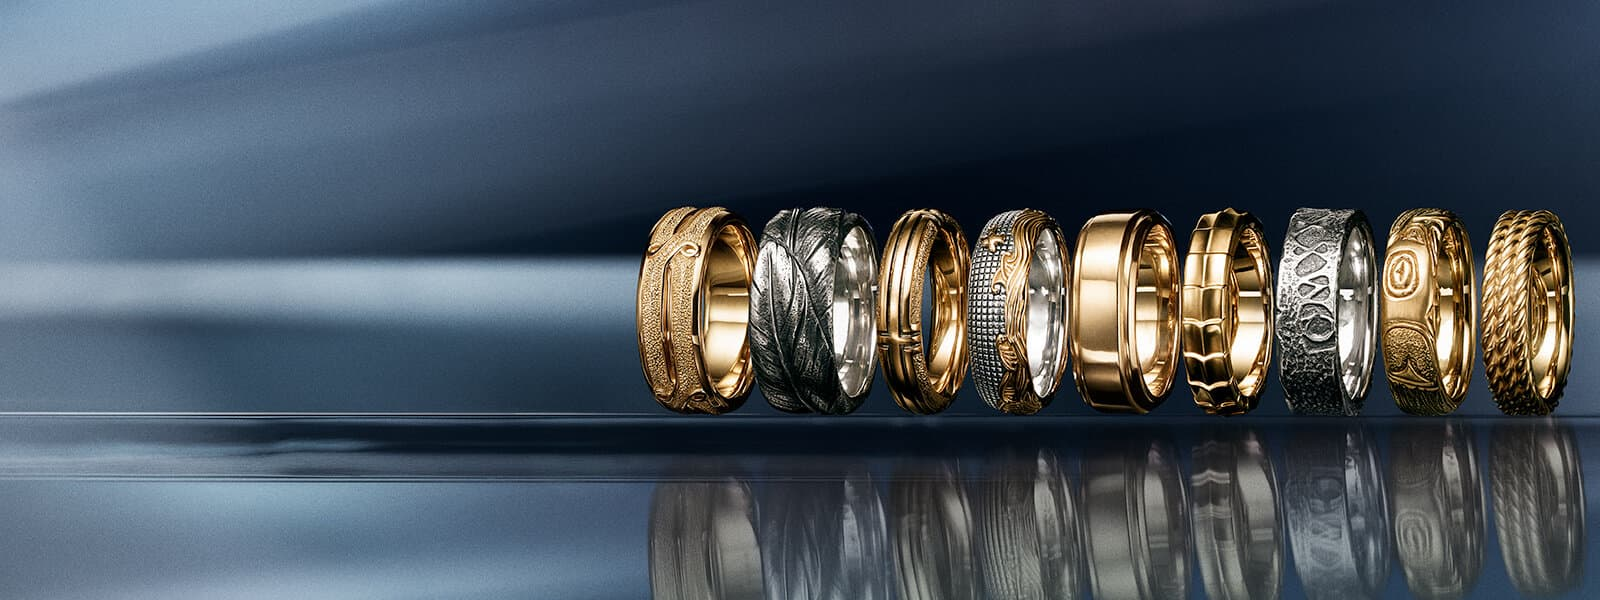 A color photograph shows a horizontal row of nine David Yurman men's band rings from the Armory®, Southwest, Waves, Deco, Shipwreck, Northwest and Maritime® collections atop a reflective surface with angular, multi-colored reflections of light and jewelry and in front of a dark ombré background. One of the Southwest bands and the Shipwreck band are crafted from sterling silver. The Waves band is crafted from sterling silver with 18K yellow gold. All of the other bands are crafted from 18K yellow gold.